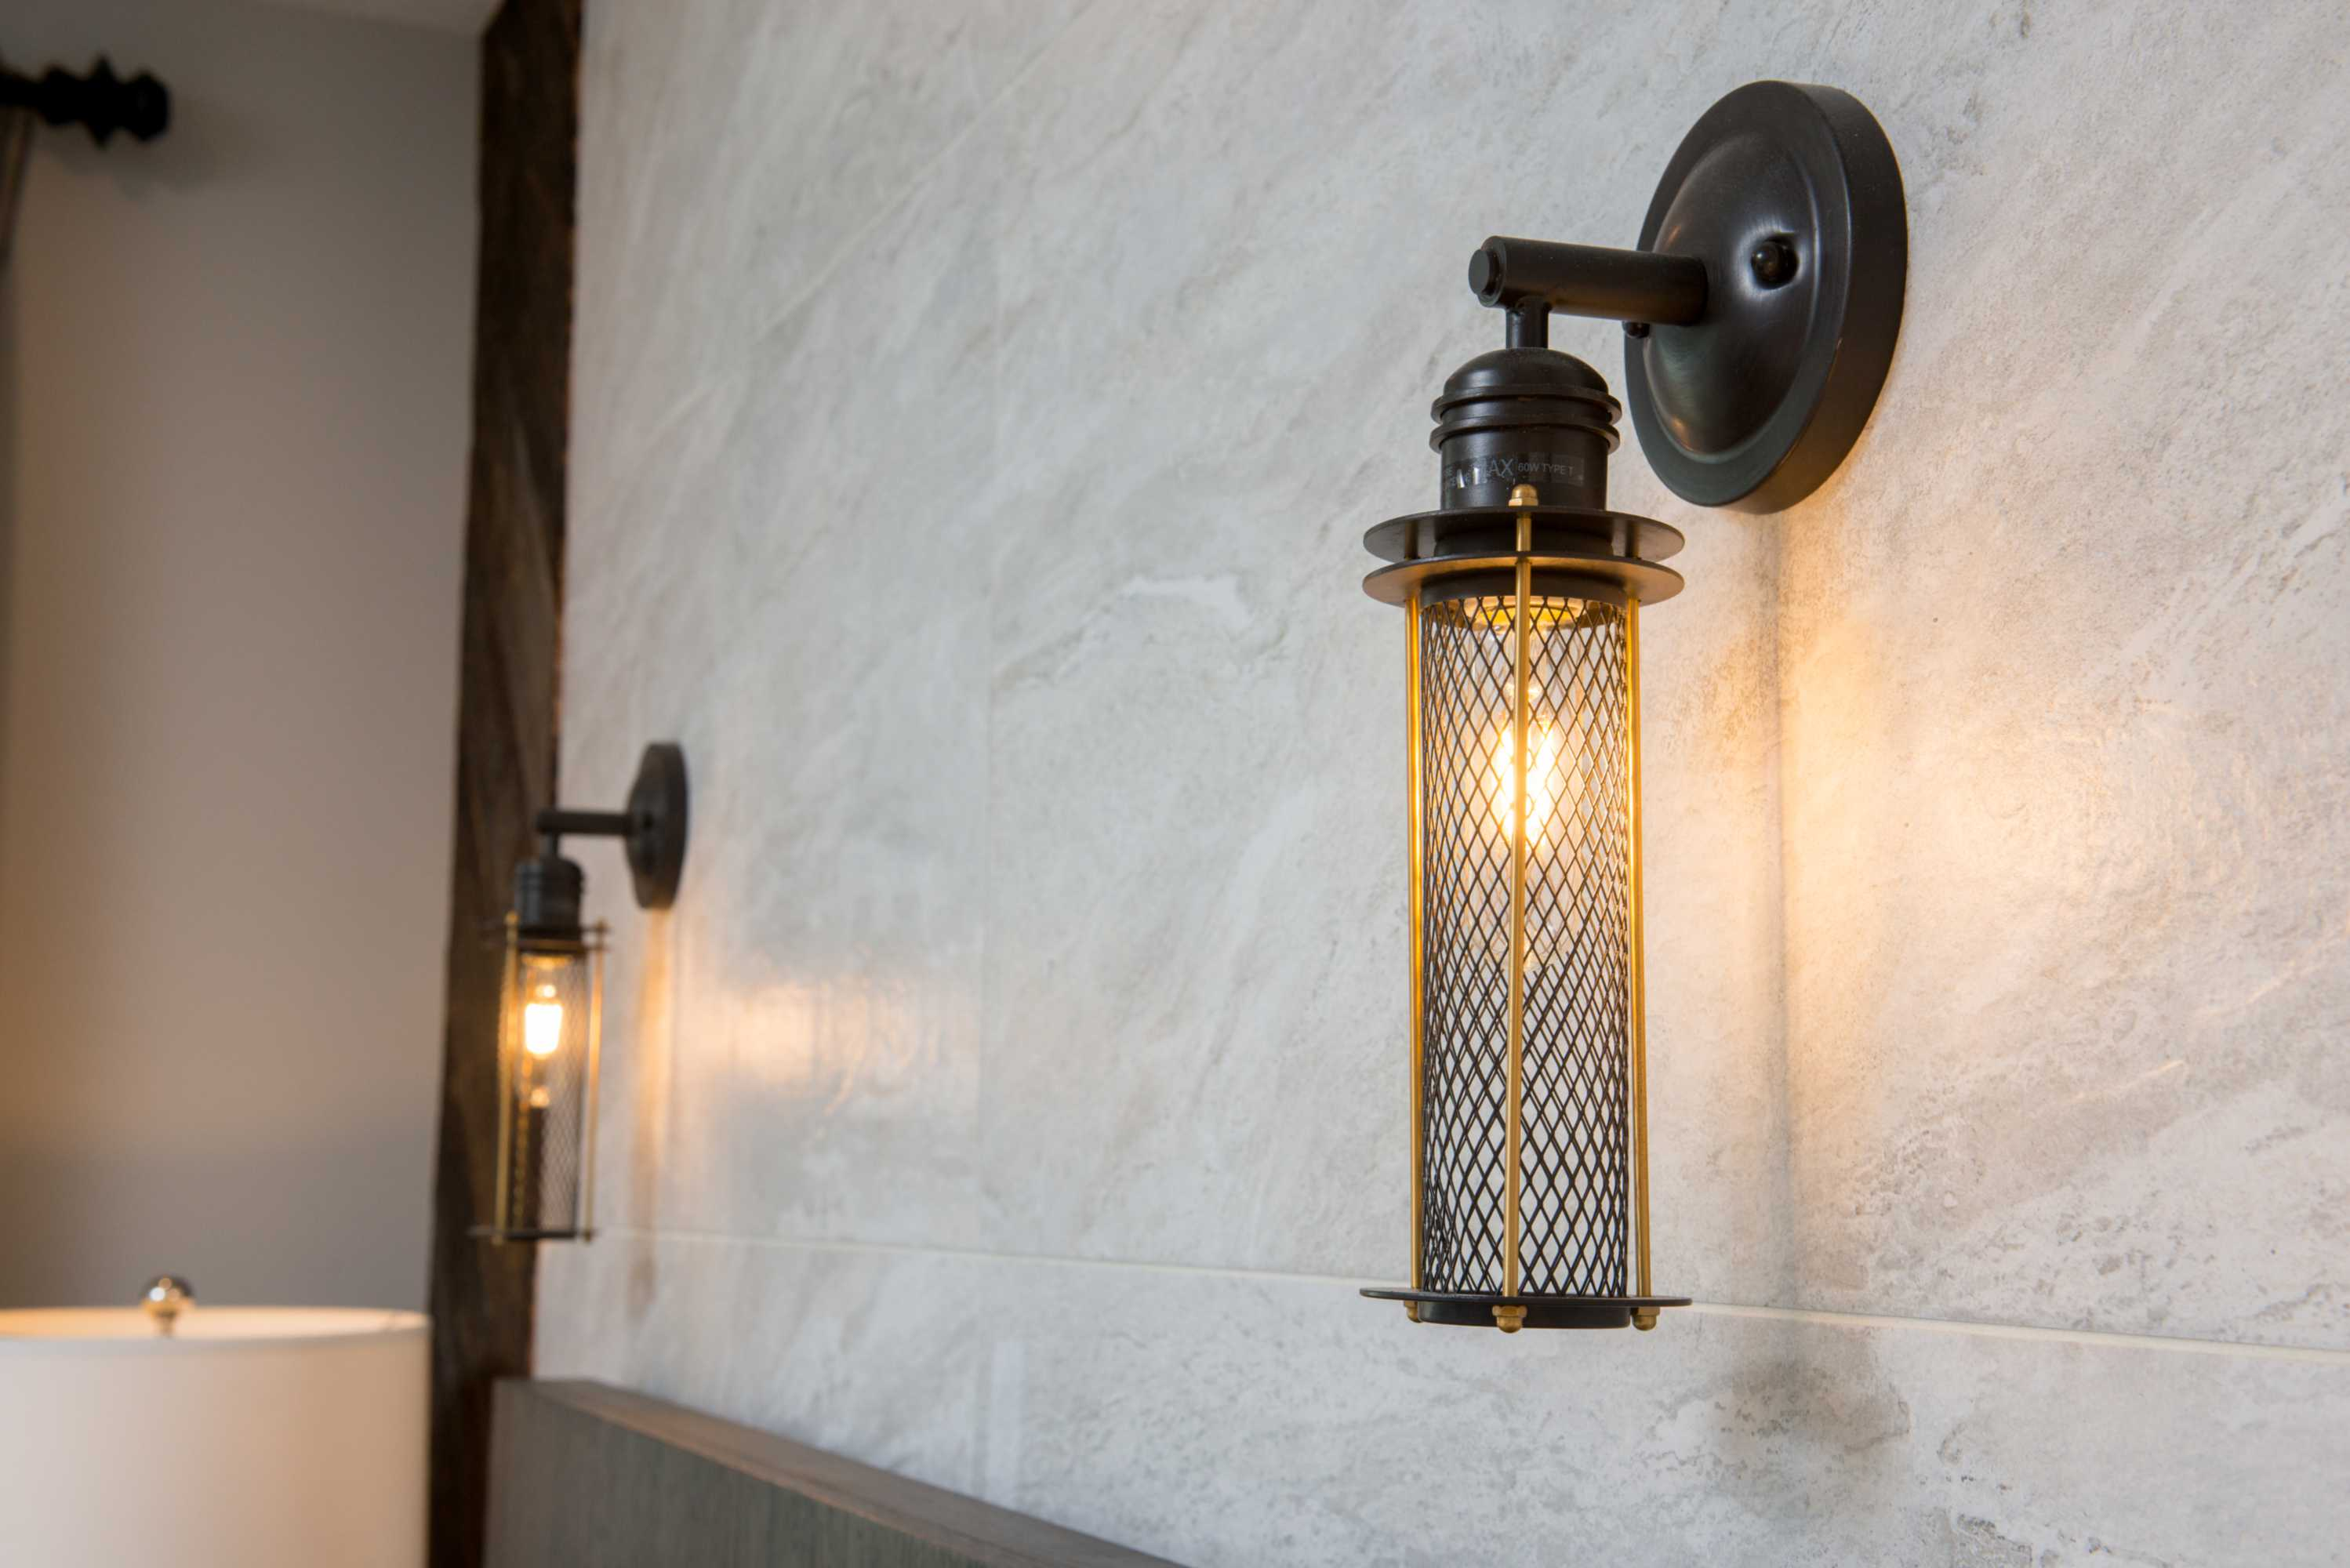 How To Use Wall Sconce Lighting To Beautify Your Home Galleria Lighting